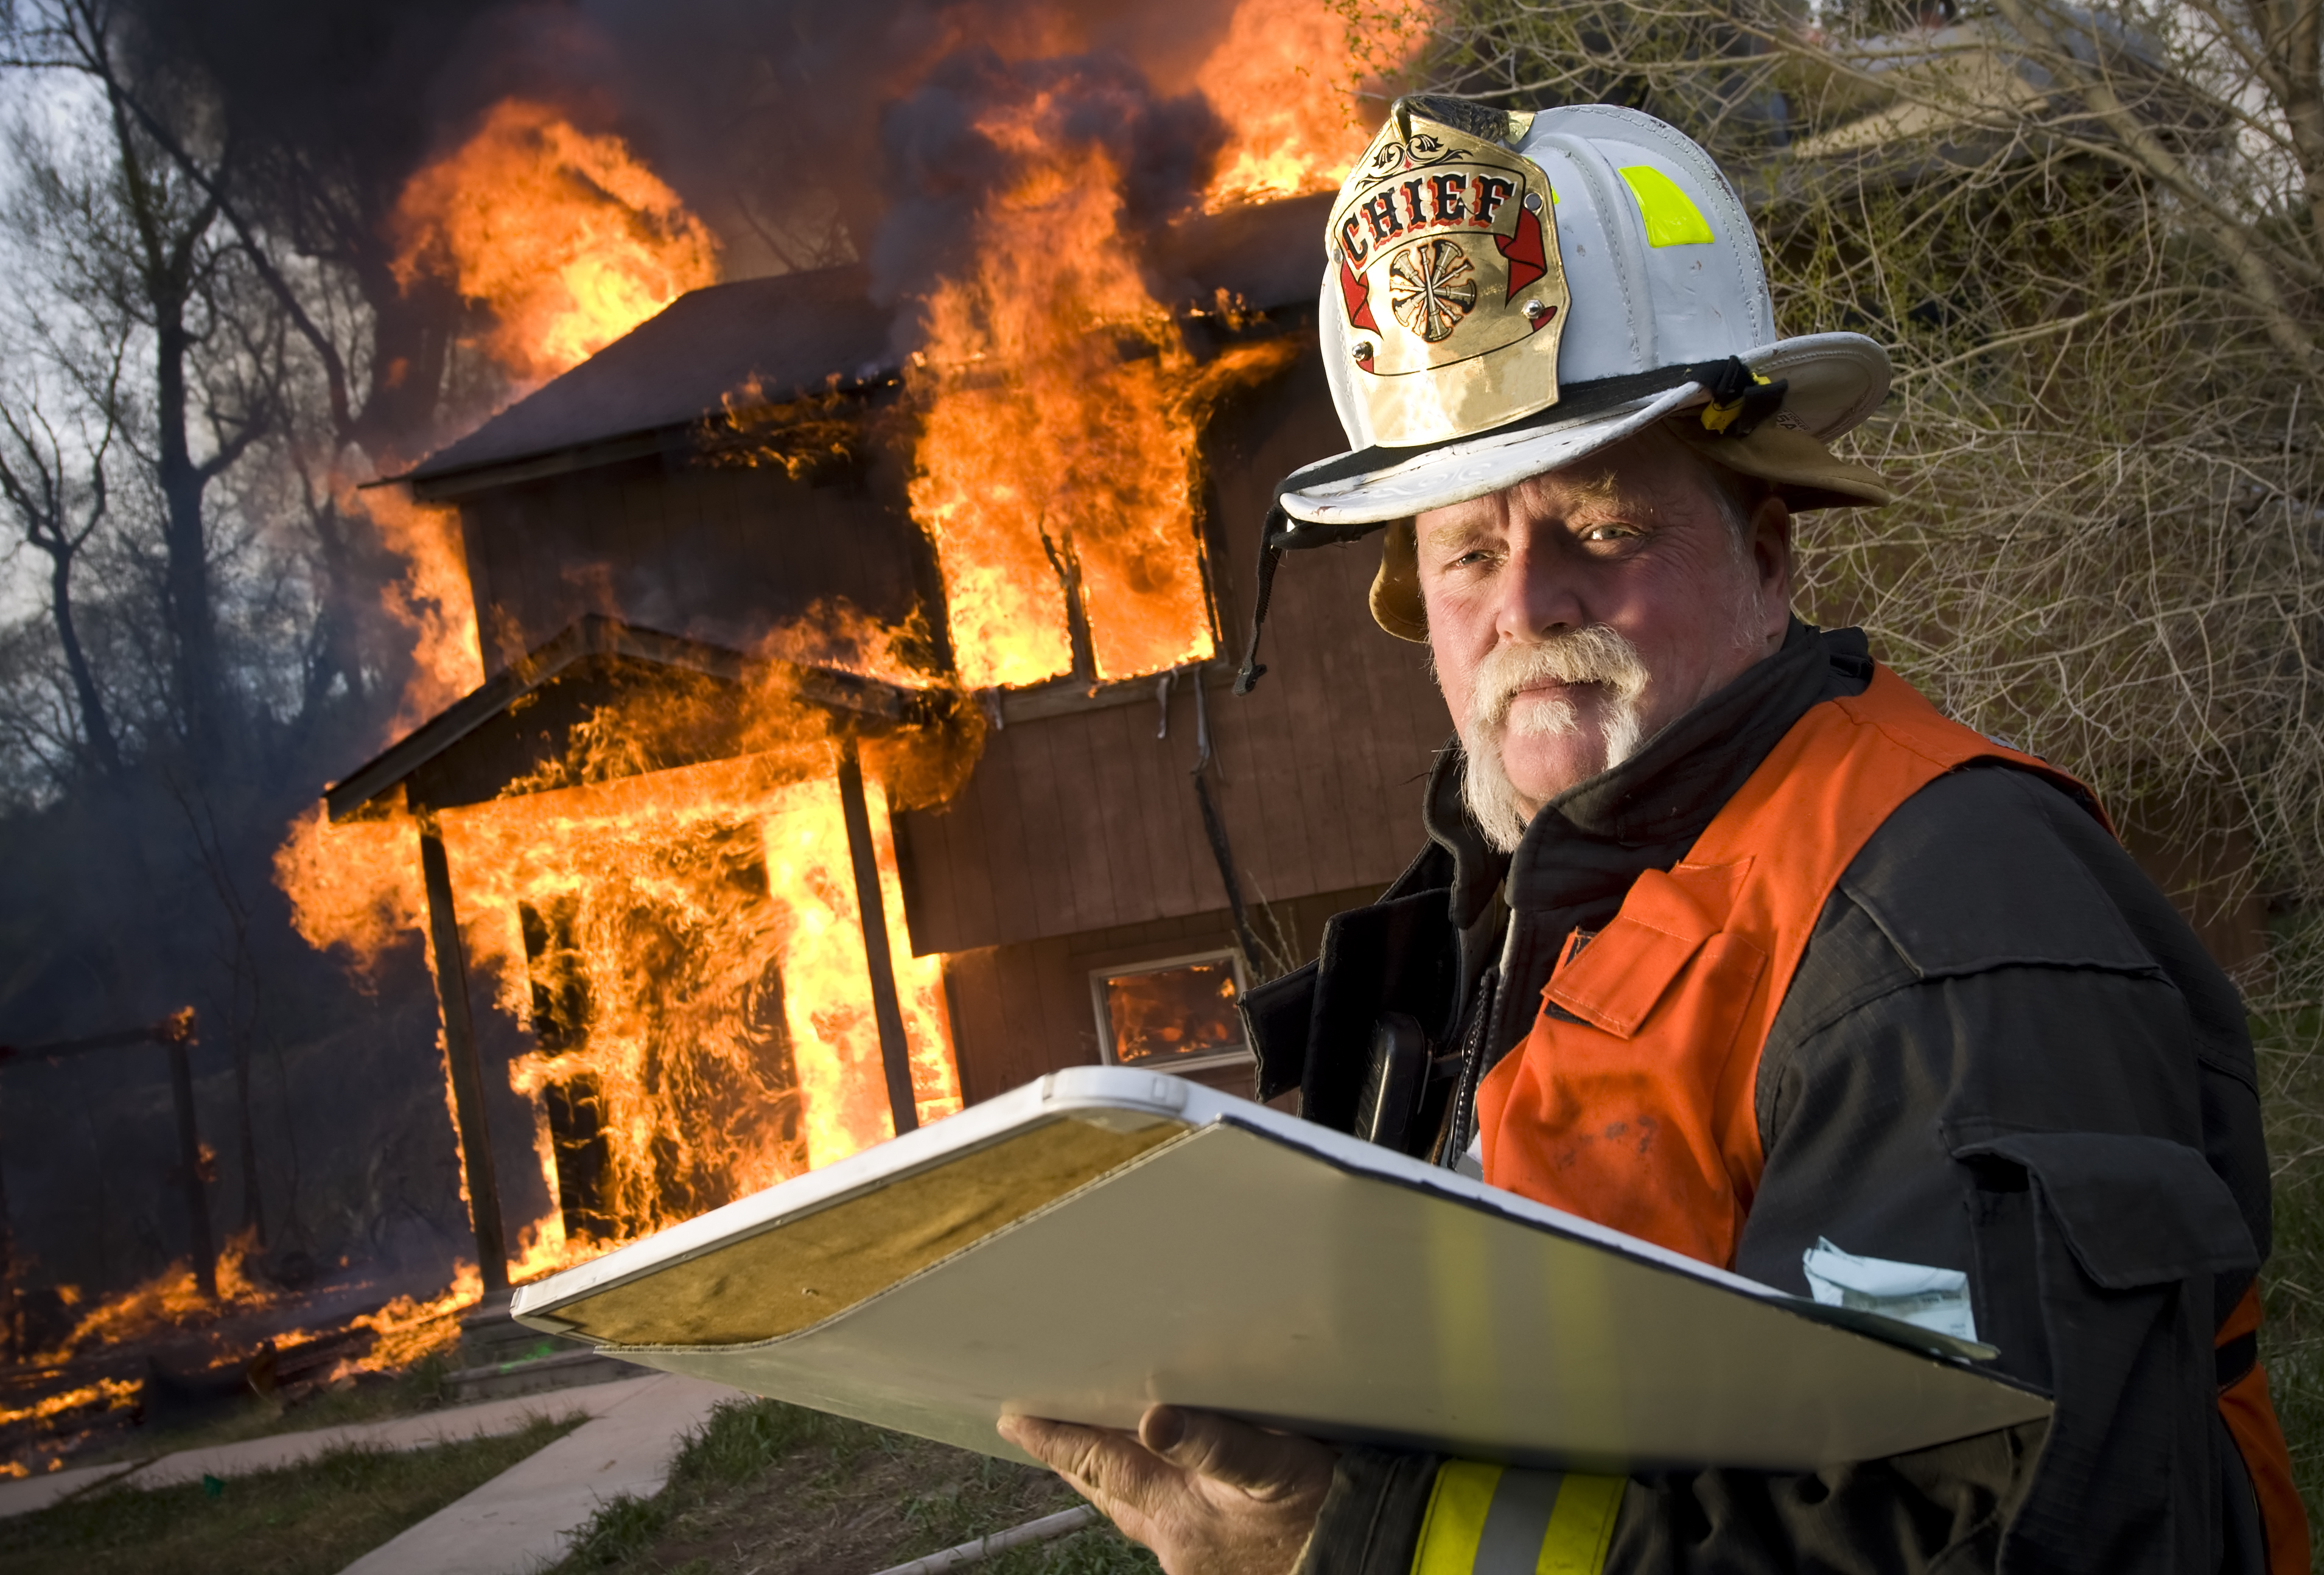 What Can I Expect in a Fire Chief Interview? | Career Trend